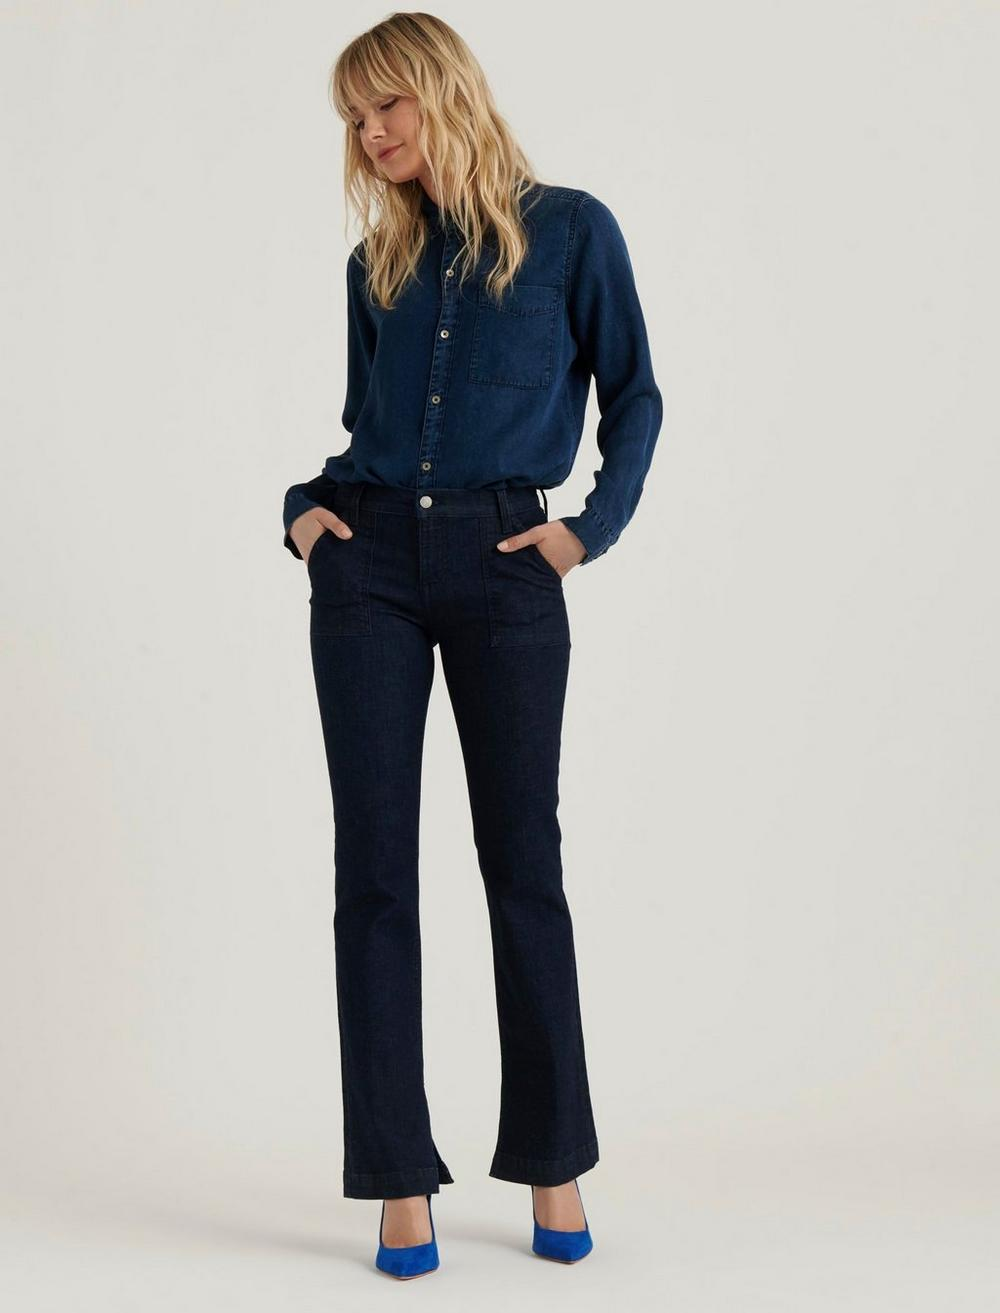 MID RISE AVA BOOT JEAN, image 1